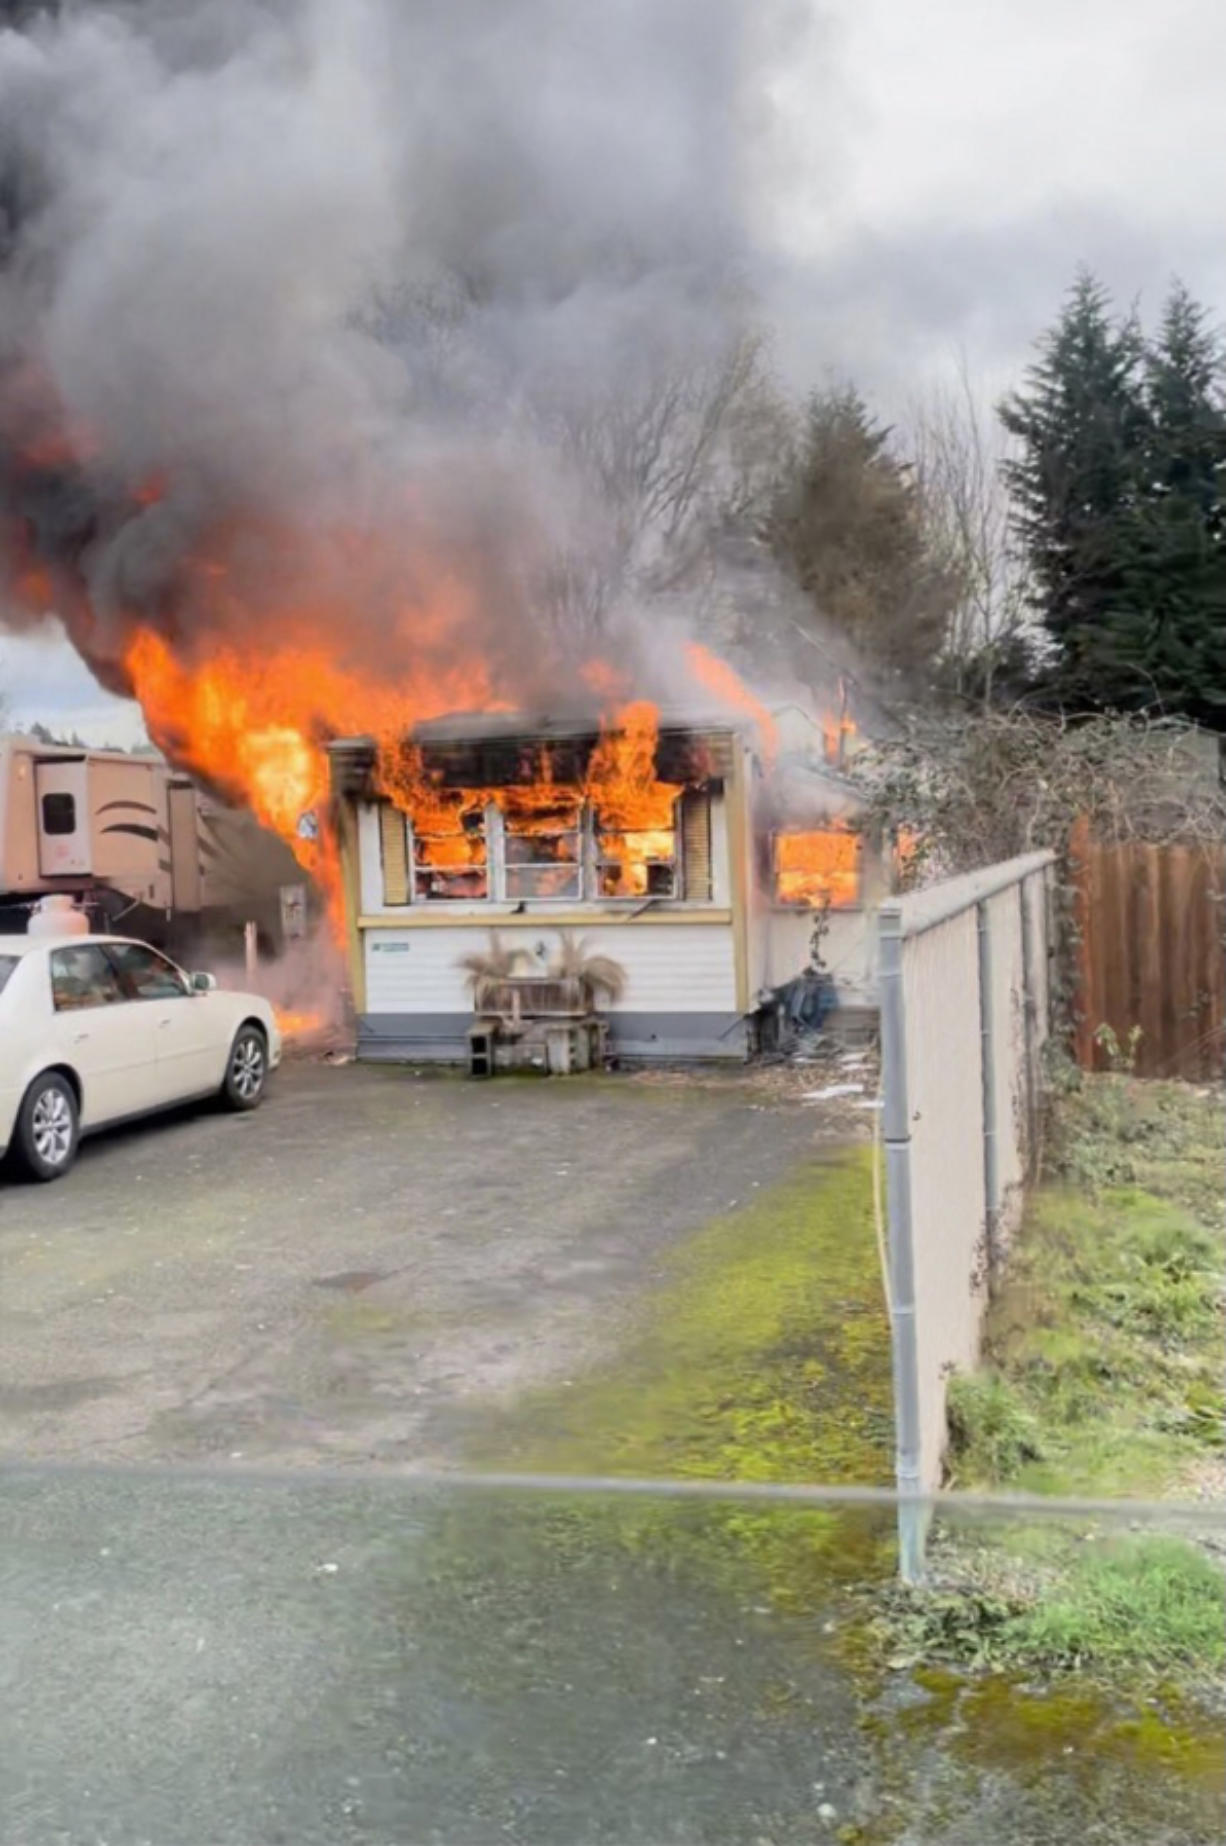 Two people were injured in a mobile home fire Saturday afternoon after a propane tank exploded inside the residence in Vancouver's Rose Village neighborhood.